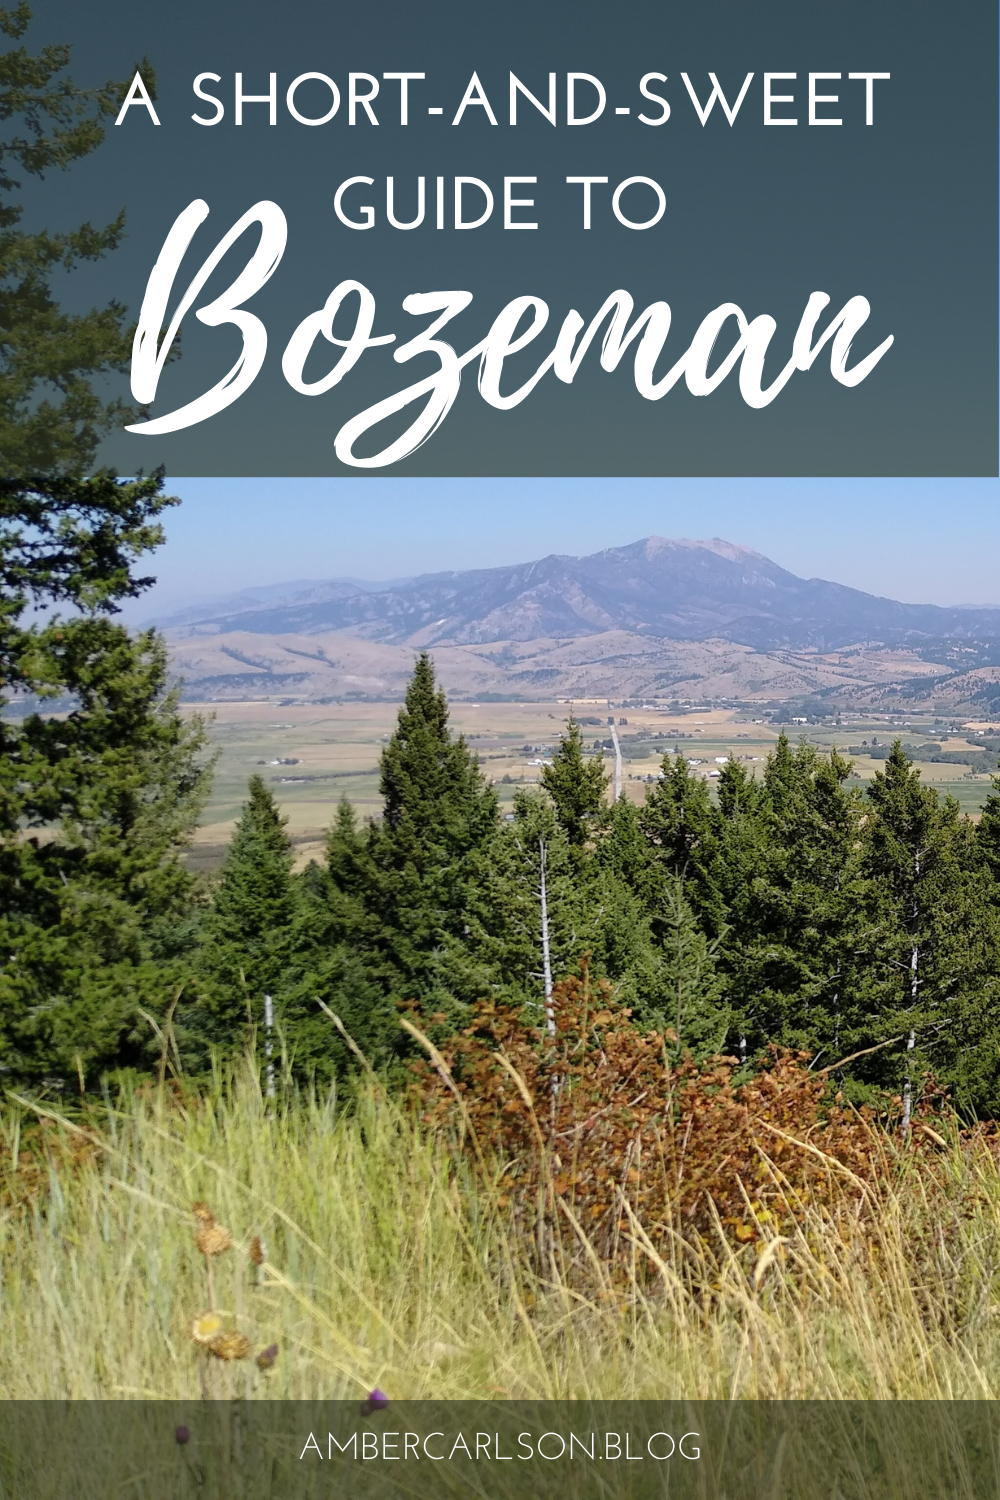 Thinking about a trip to Bozeman? Check out this travel guide to help you make plans for your time there. #travelguide #ustravel #bozeman #restaurants #hiking #sightseeing